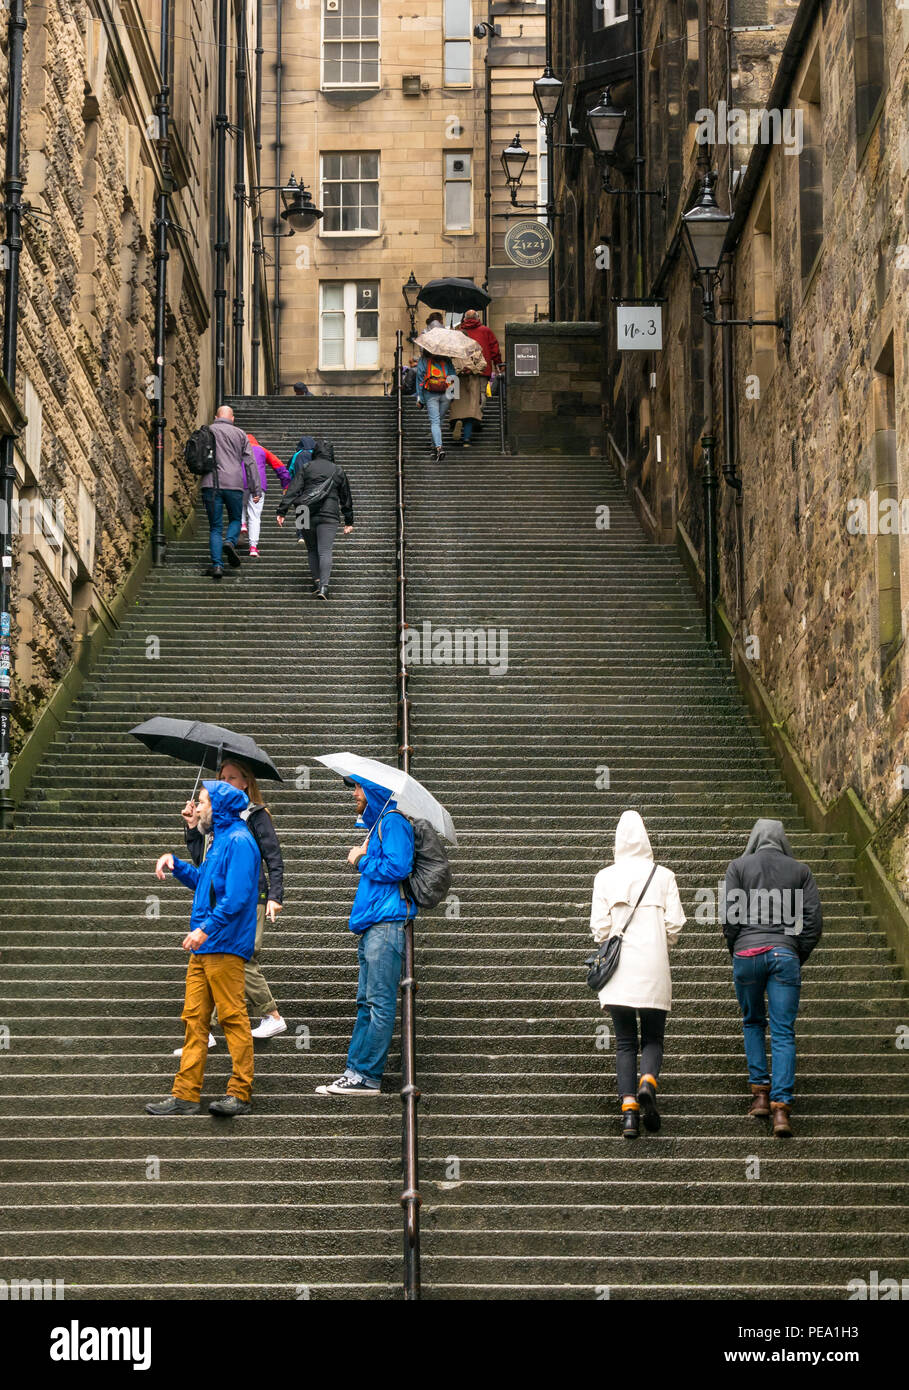 tourists-with-umbrellas-in-rain-walking-